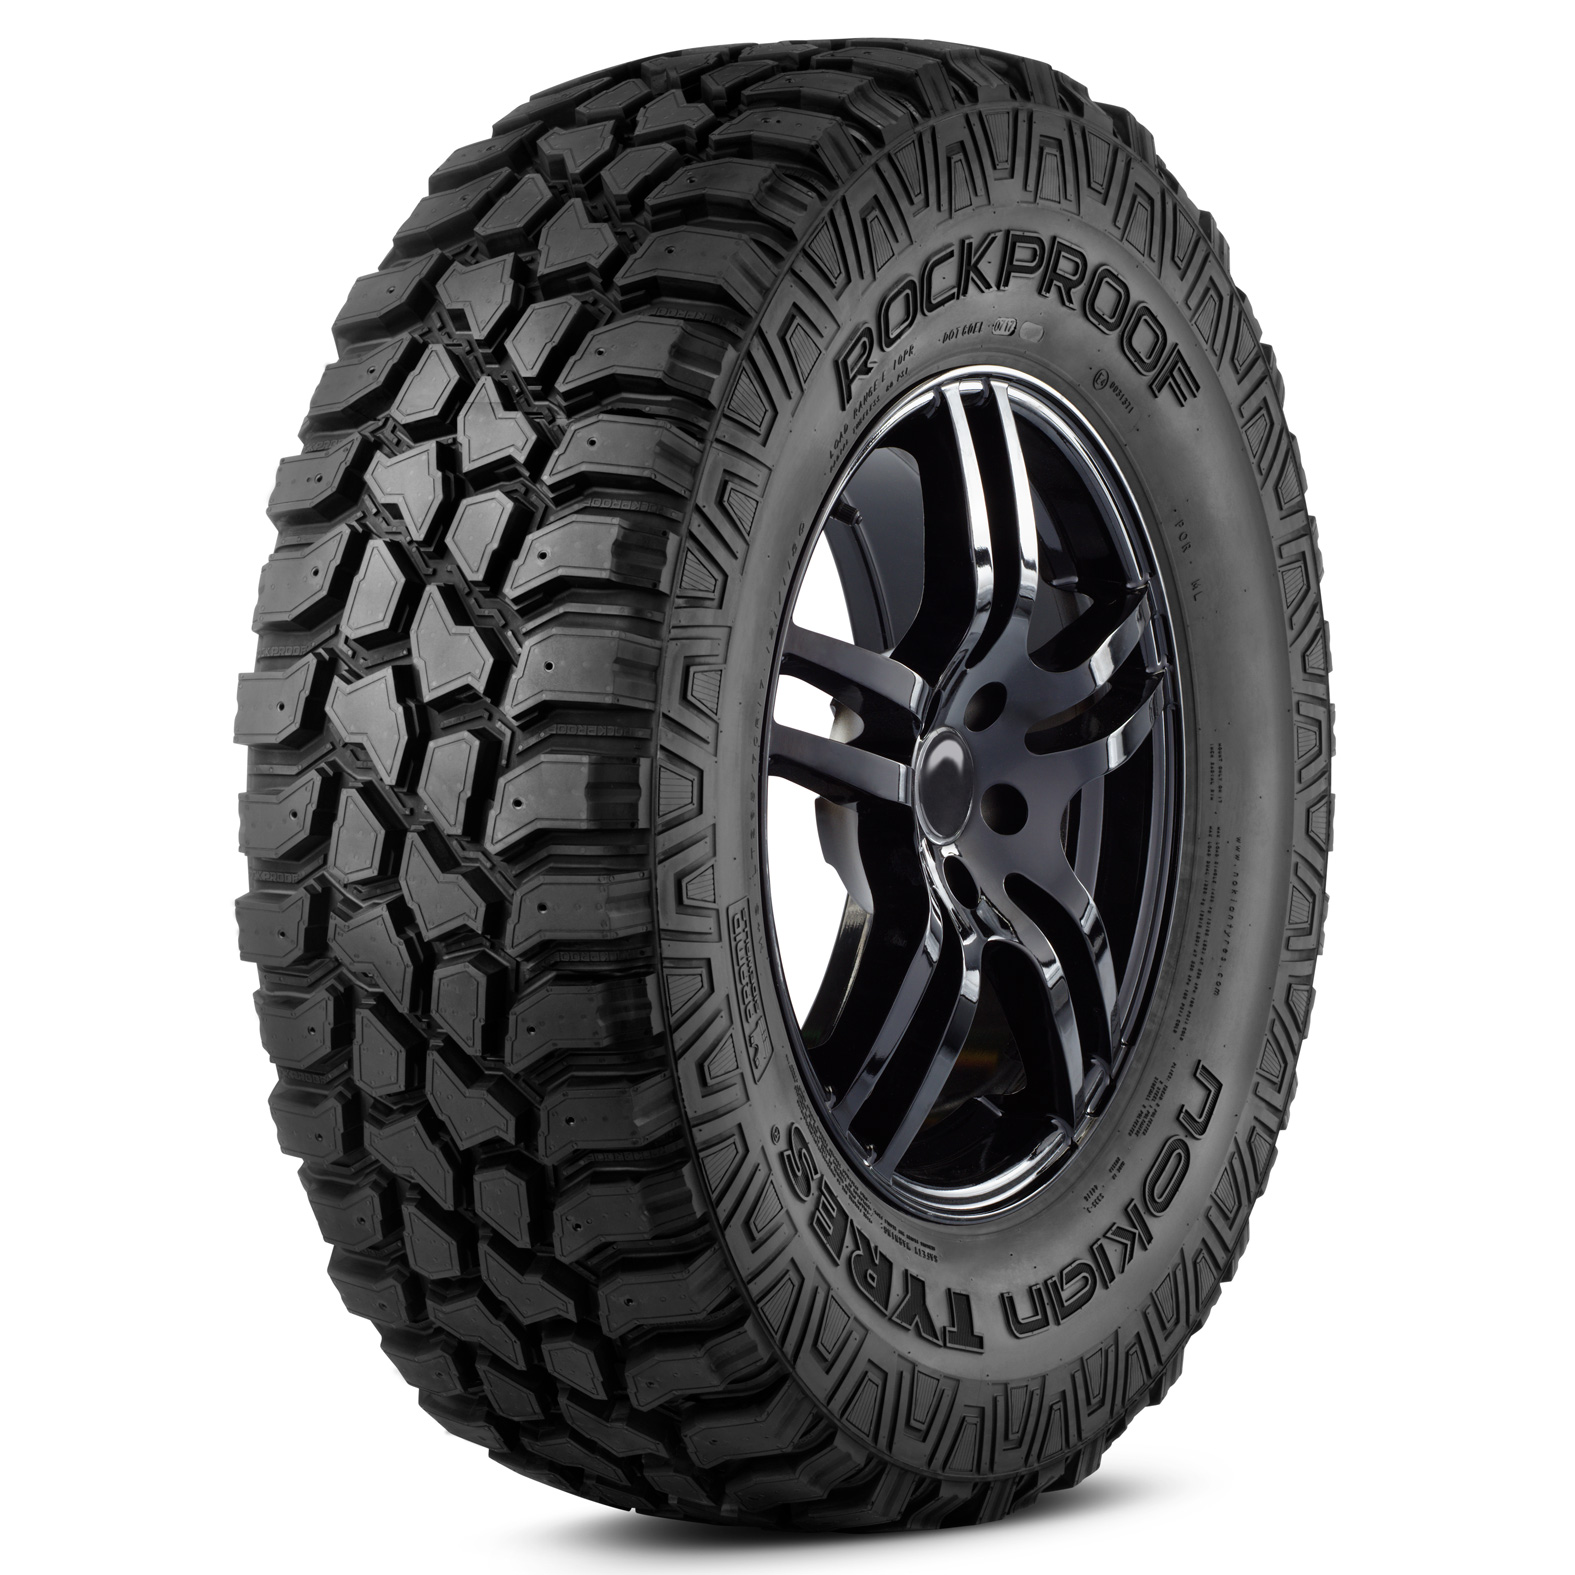 Nokian Tyres Rockproof tire - angle